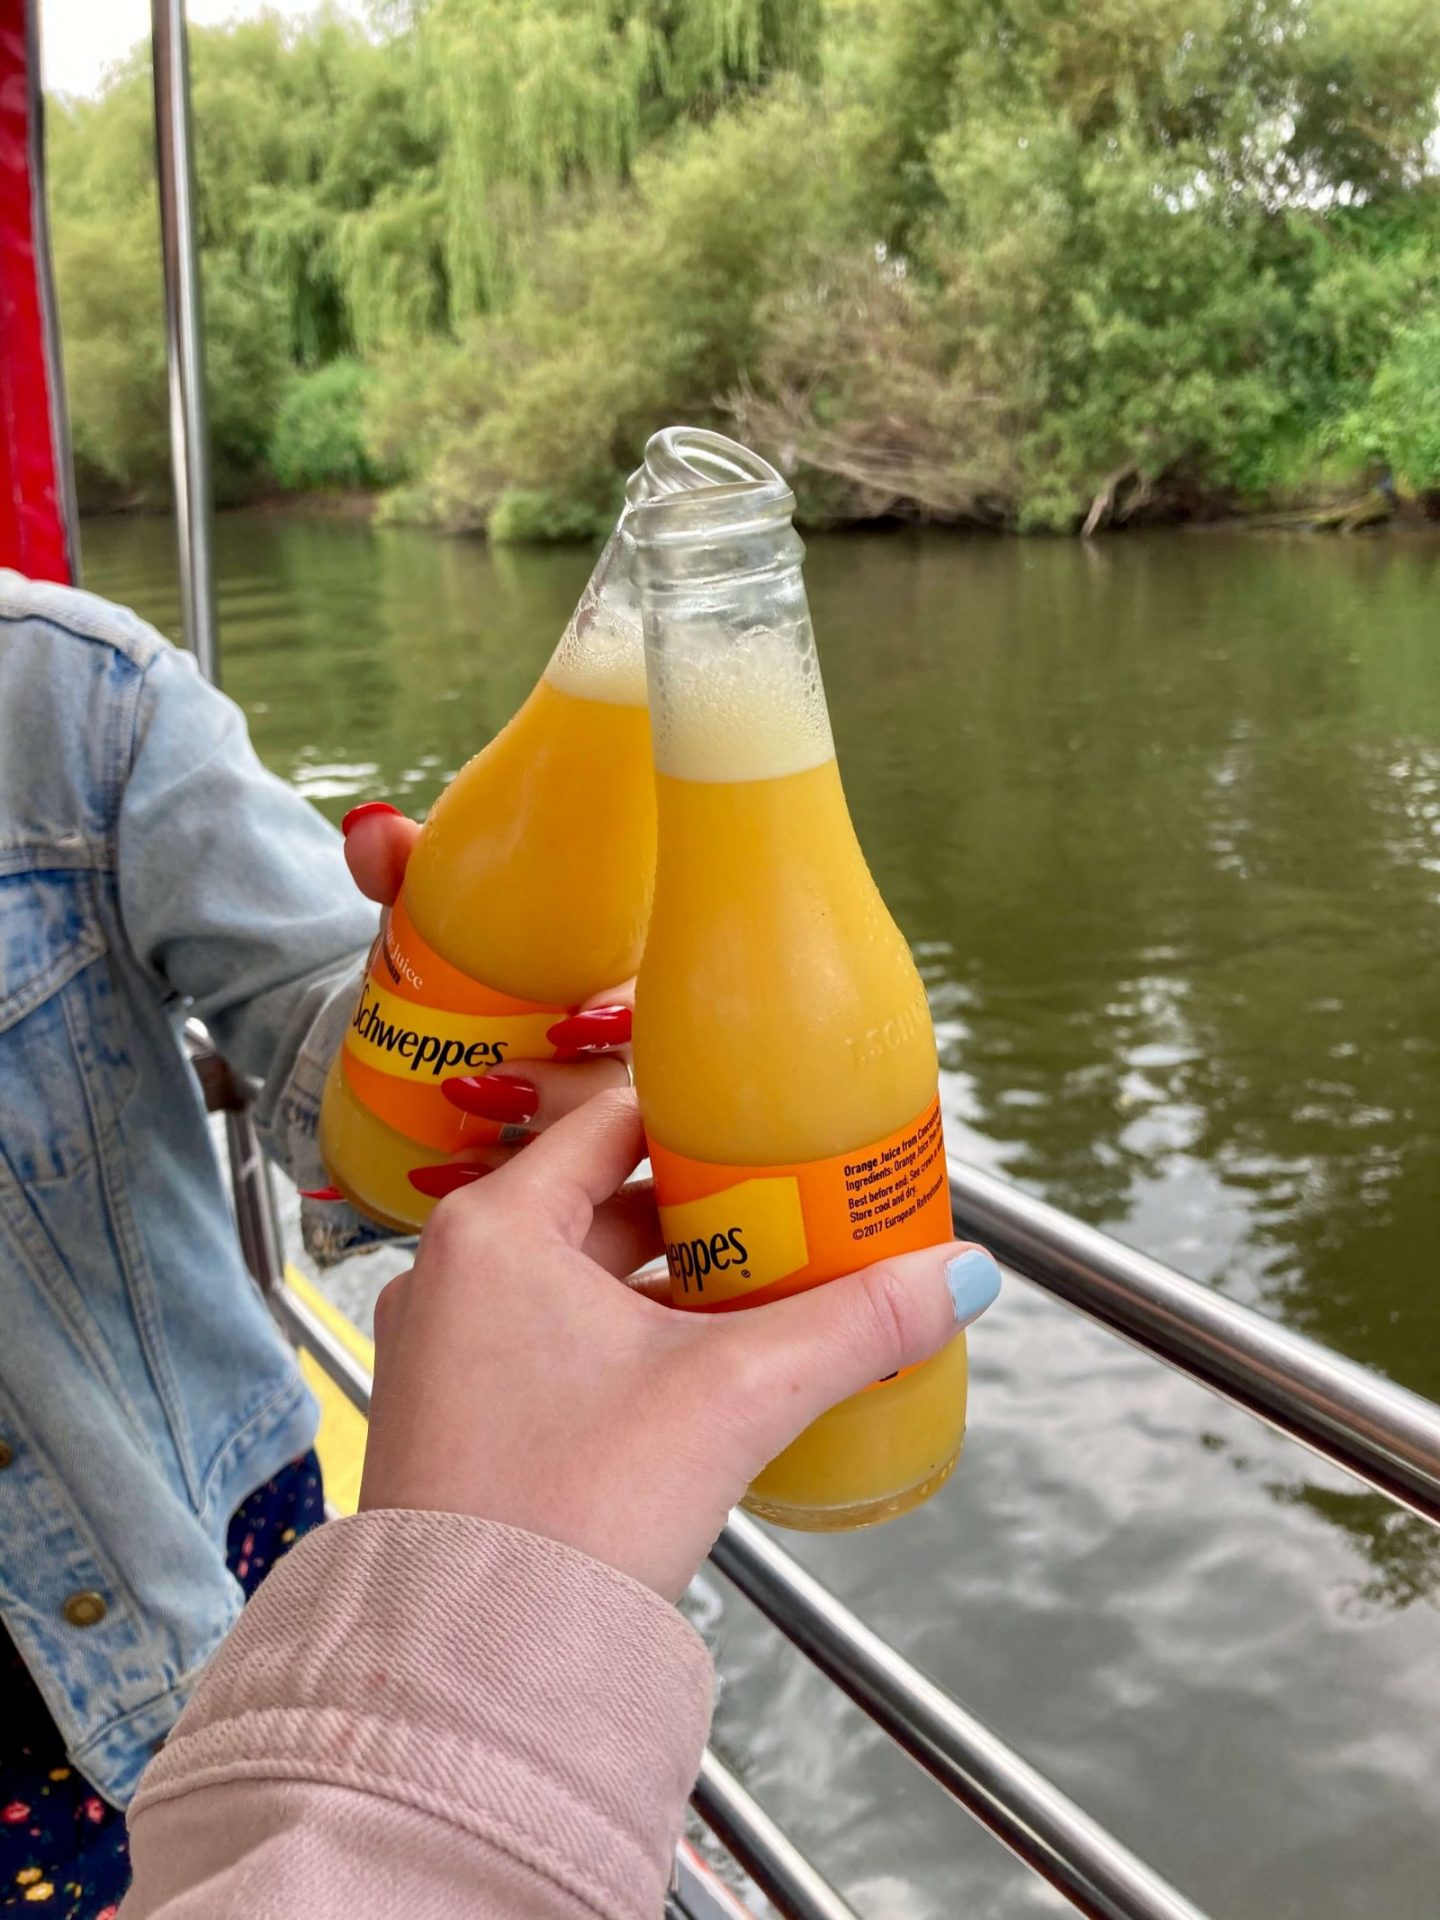 pippa and izzy's hands each holding bottled orange juice in a 'cheers' position, river and greenery visible in background